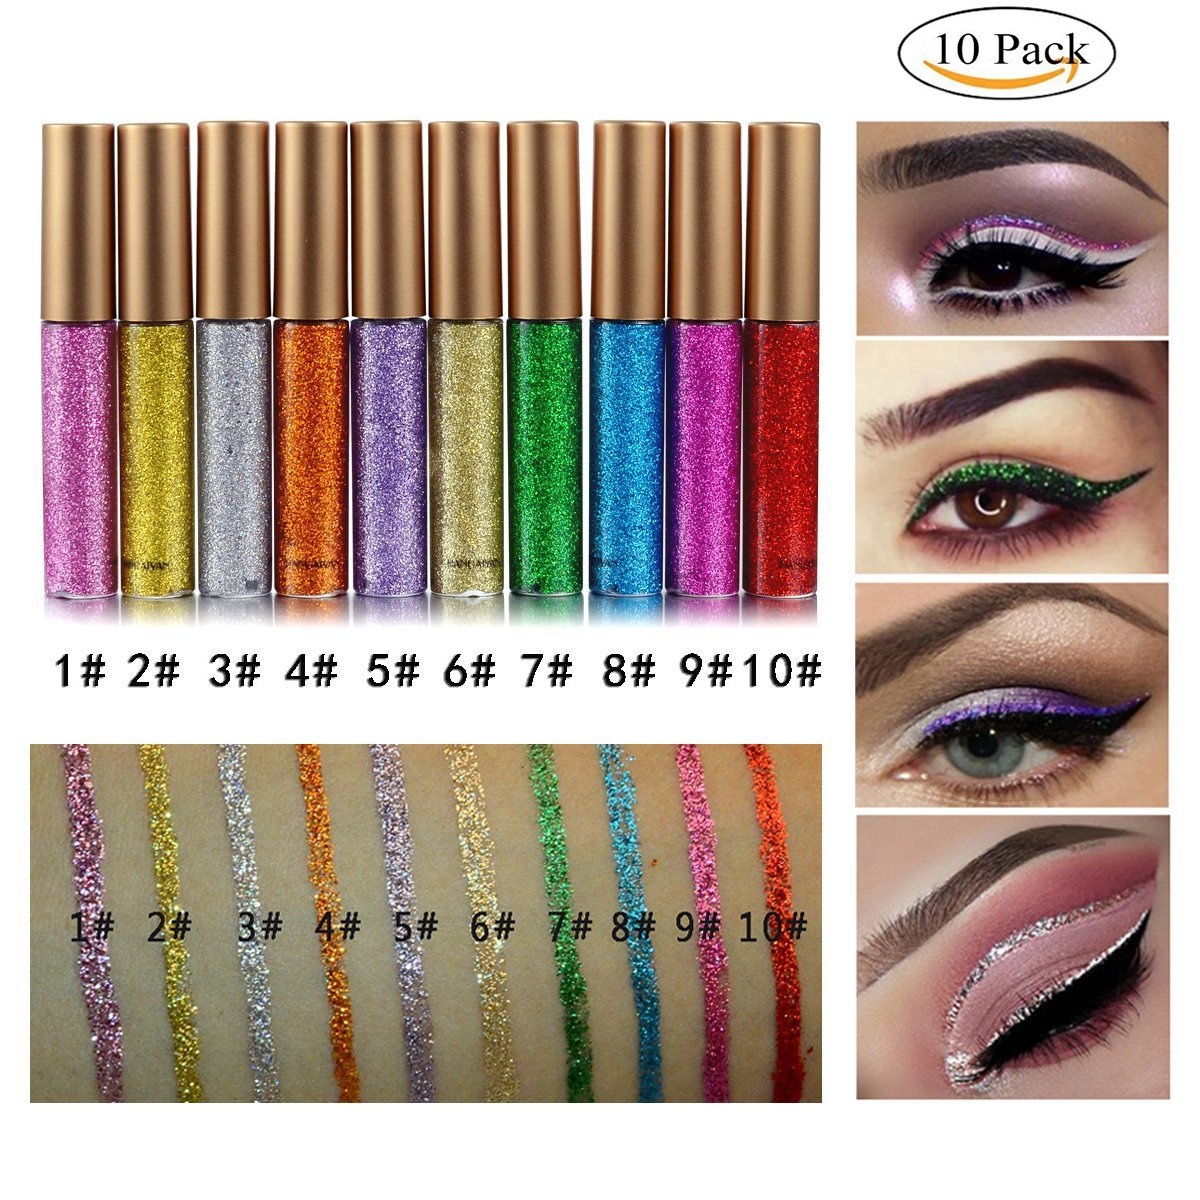 GARYOB Glitter Liquid Eyeliner,10 Colors Waterproof Sparkle Eyeliner Long Lasting Metallic Glitter Eyeliner Pen Shimmer Eye Shadow